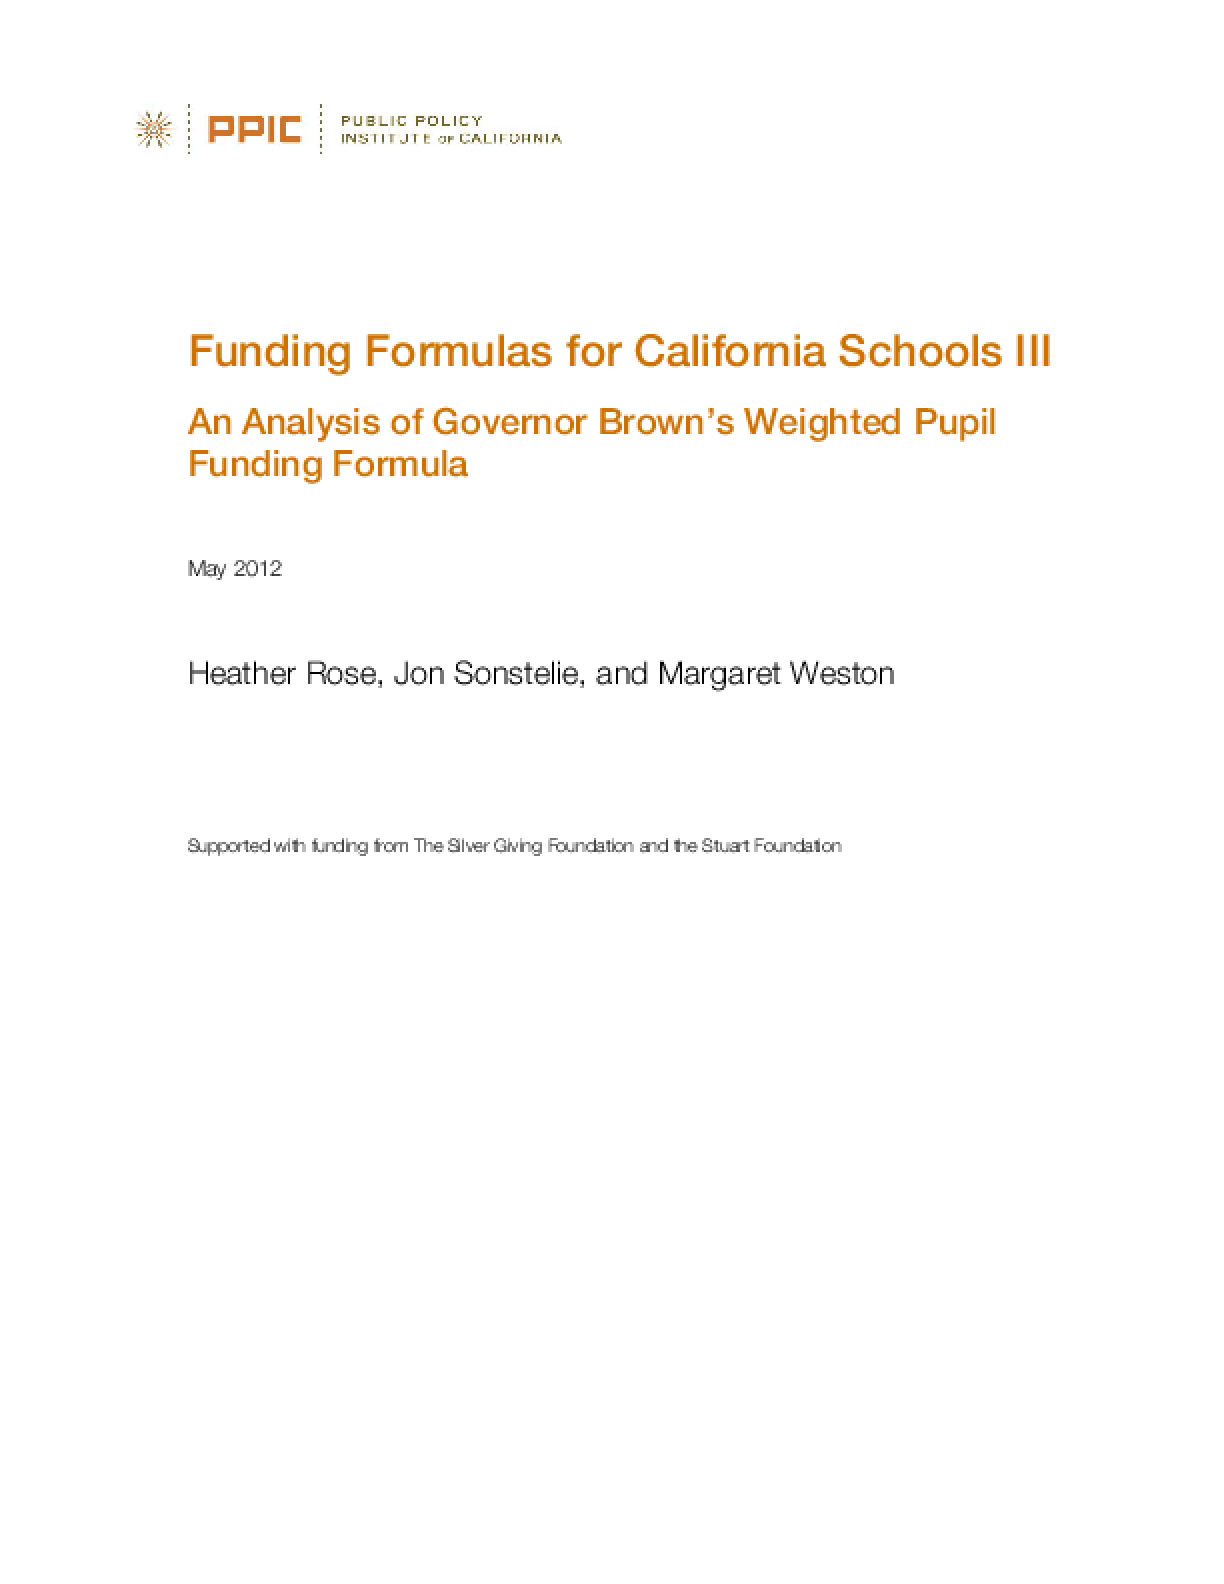 Funding Formulas for California Schools III: An Analysis of Governor Brown's Weighted Pupil Funding Formula